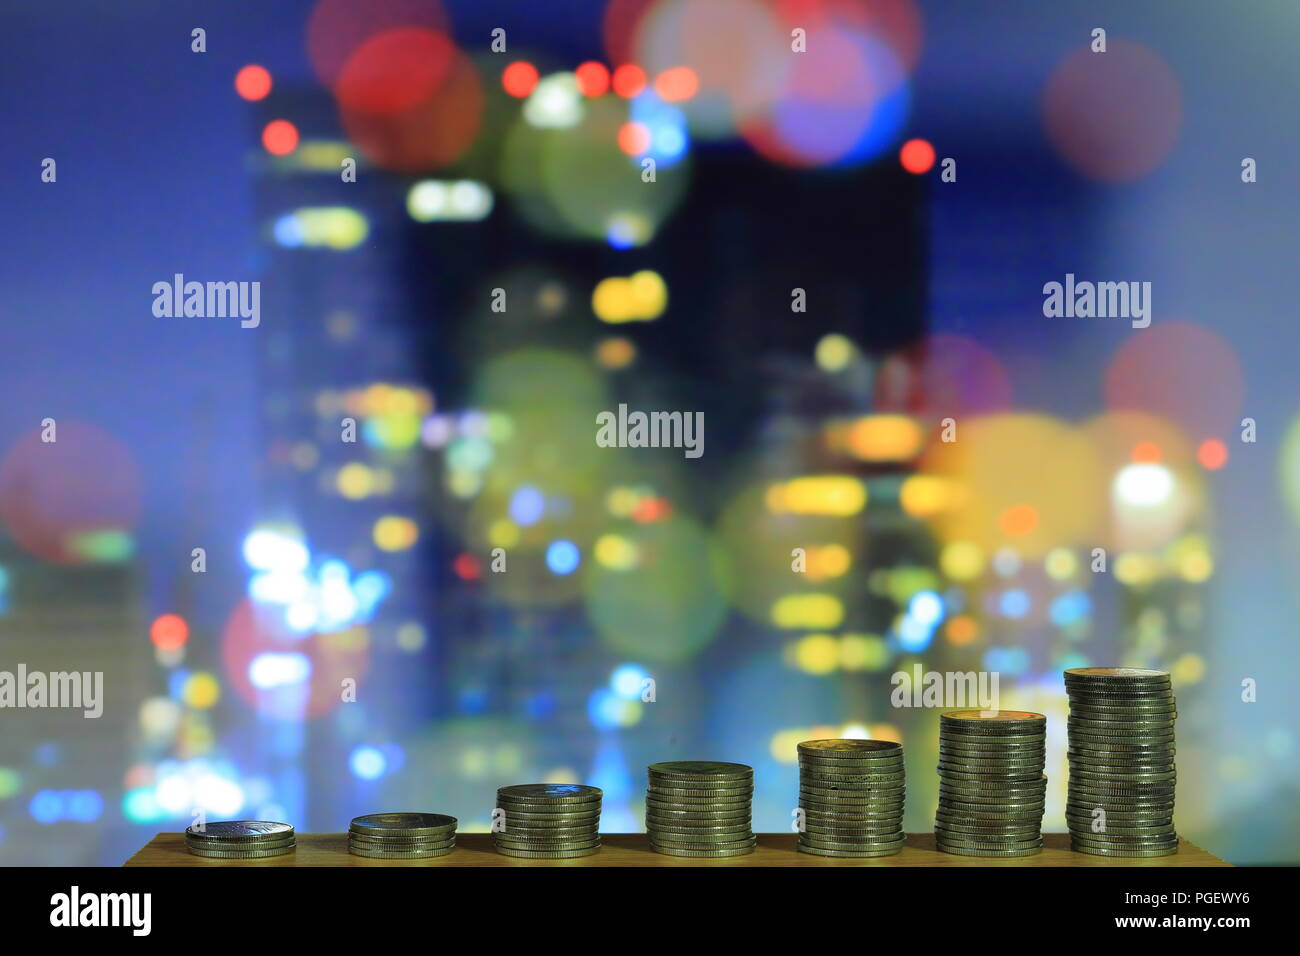 city of money. currency make metropolis go round. growing chart coin towers on wood board in front of defocused city scene at night. saving money - Stock Image